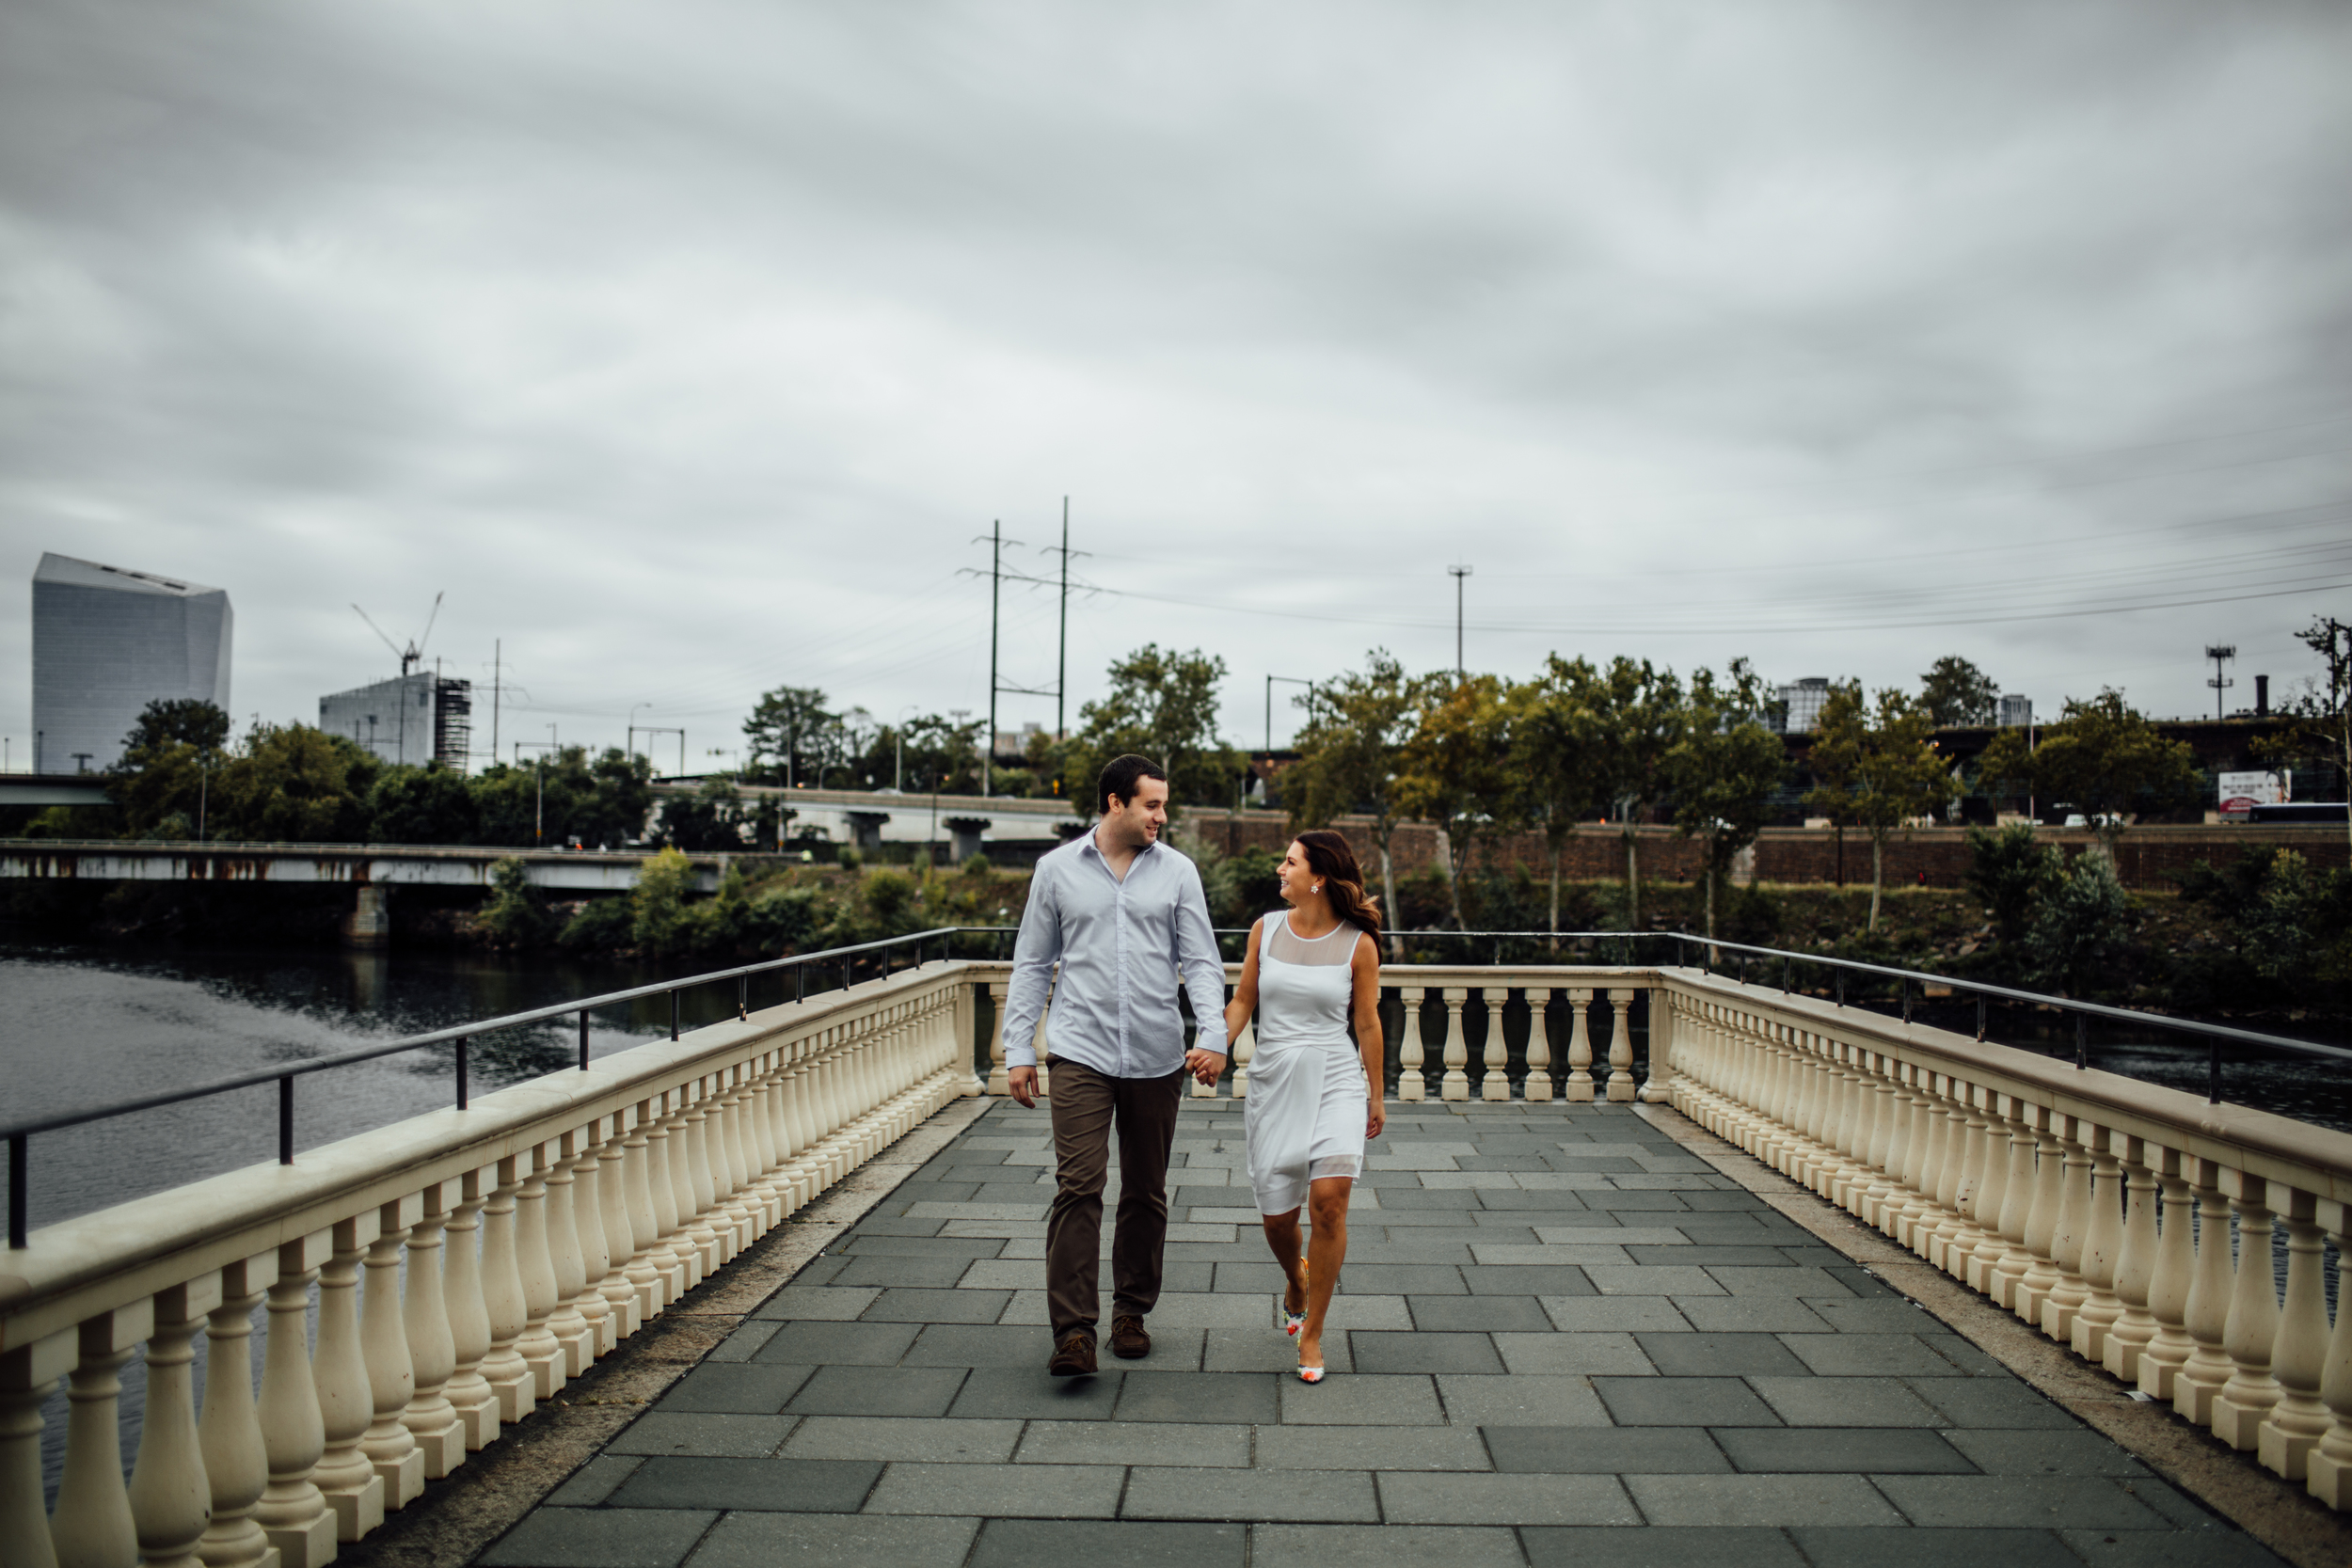 BRITTANYandKEVIN-Engagement2015 (24 of 115).jpg